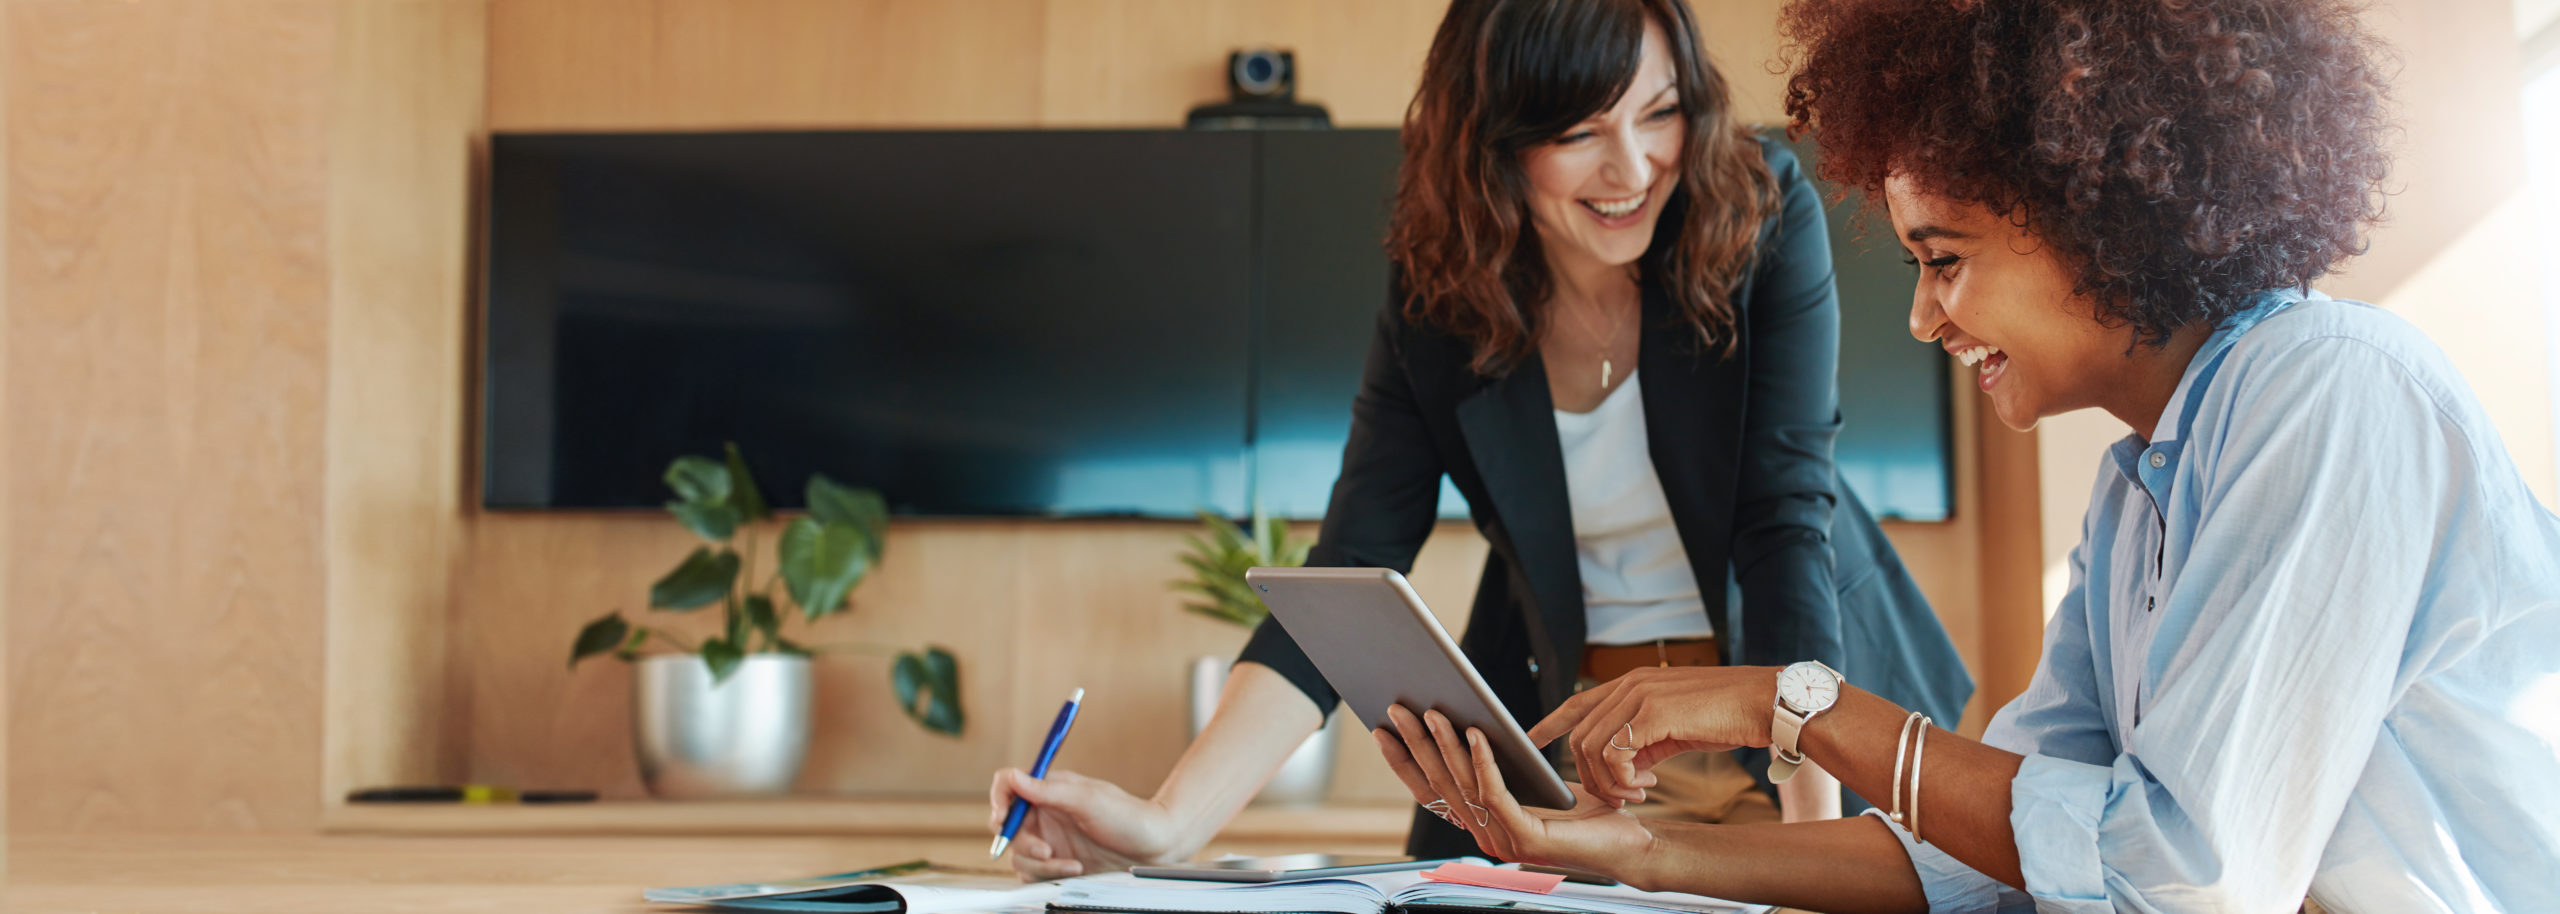 women laughing at tablet in office